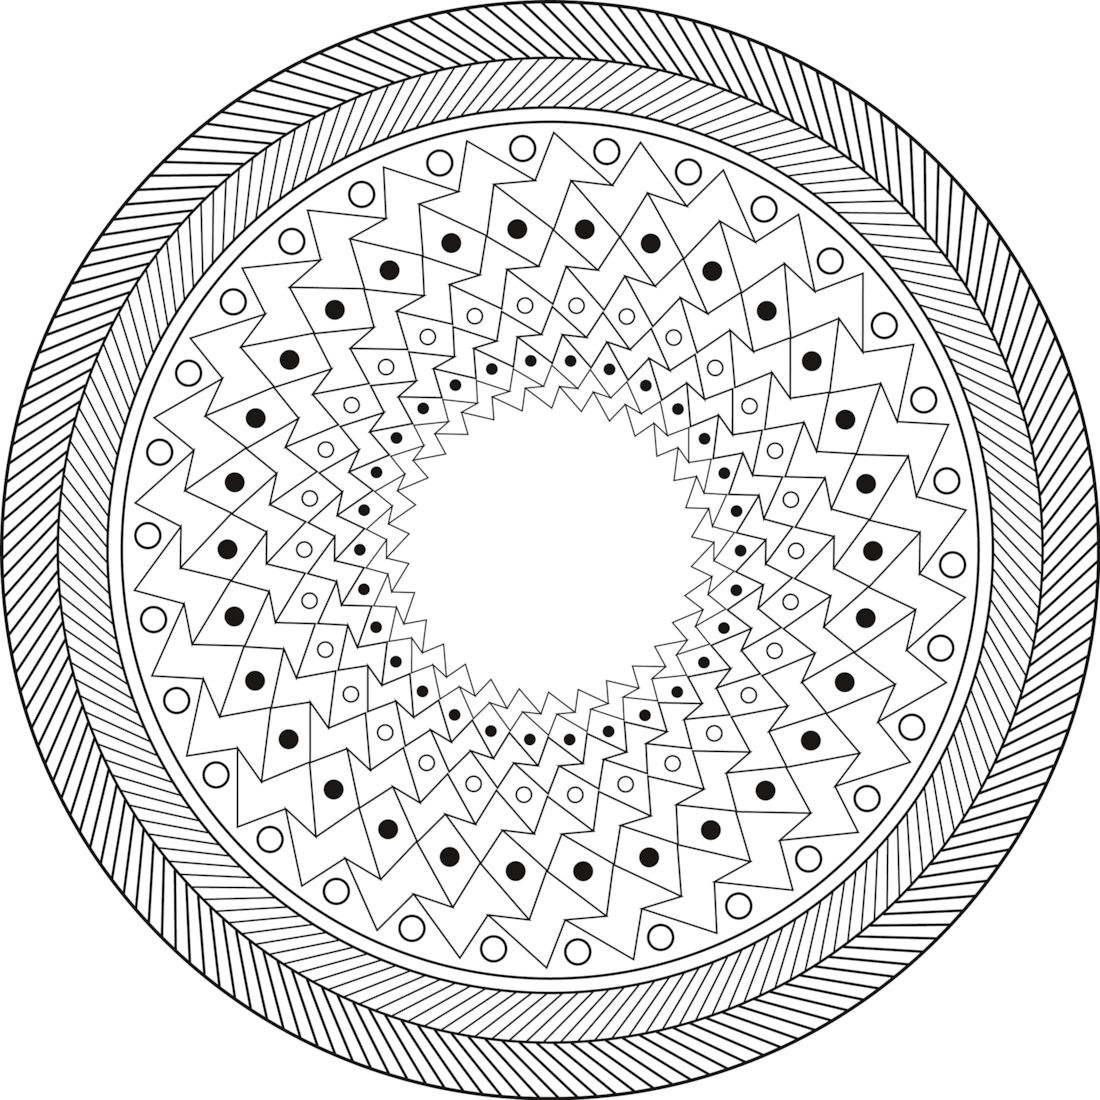 print and color this 2016 mandala calendar available in jpg and